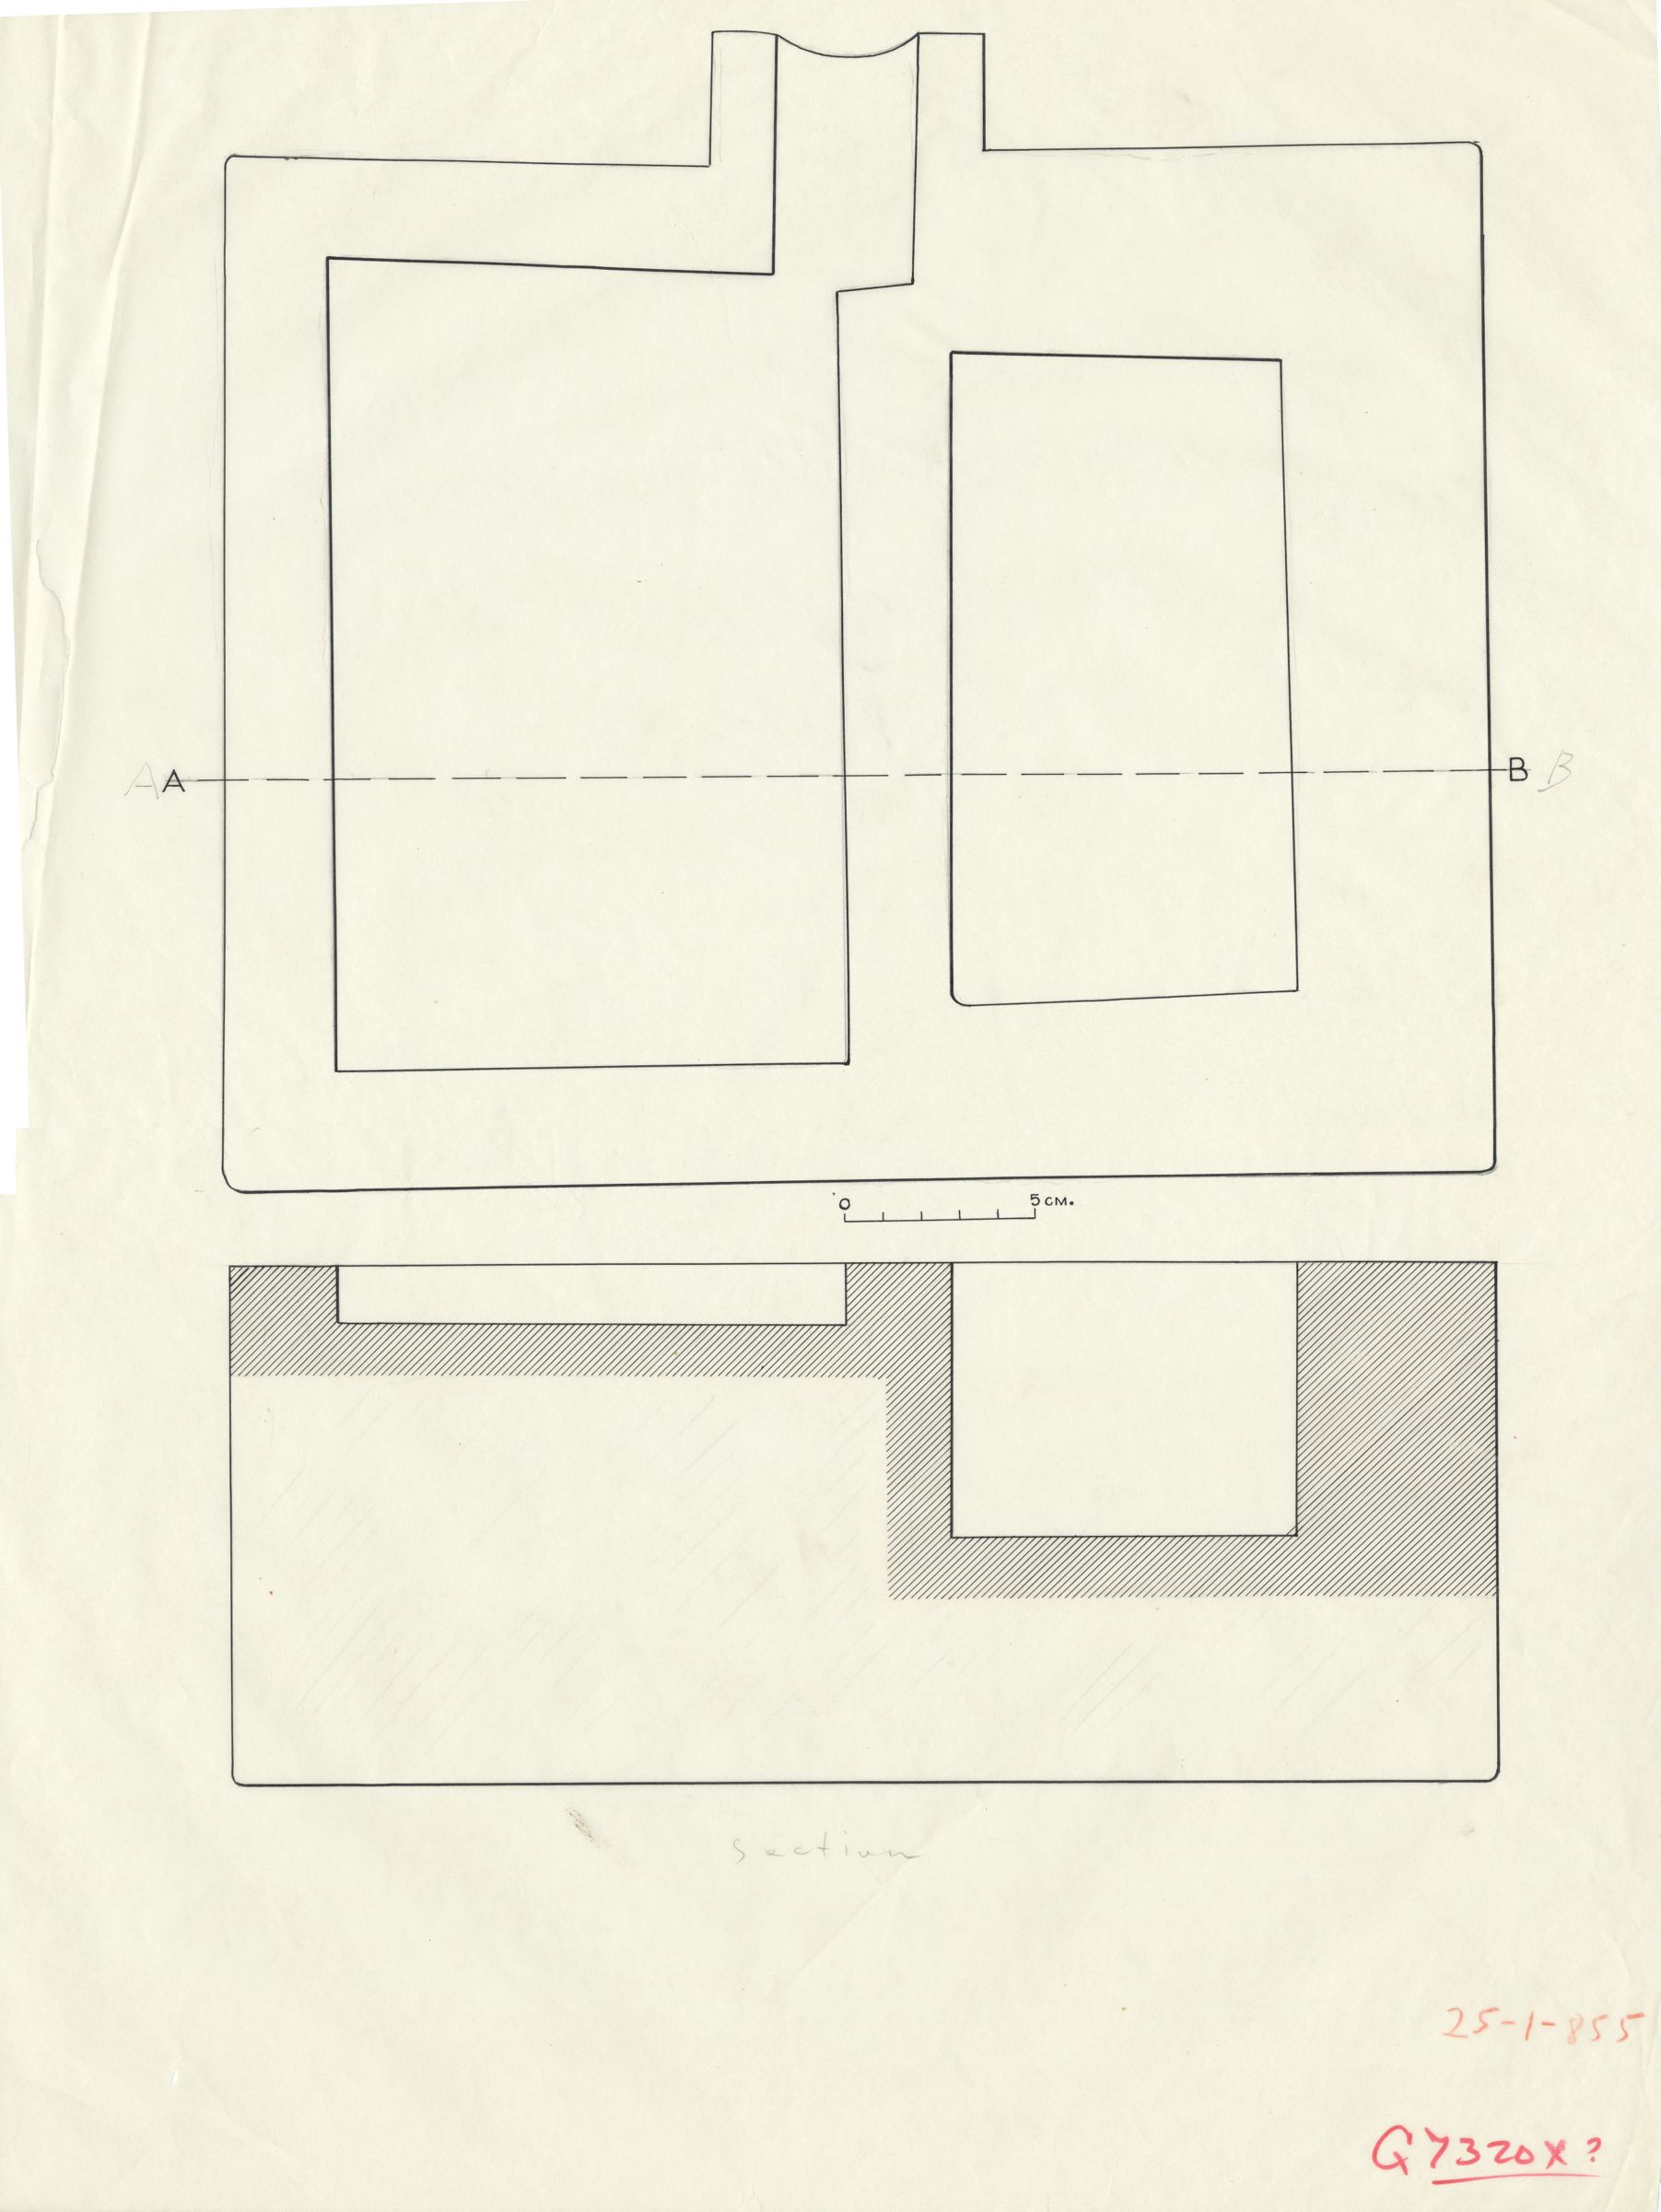 Maps and plans: G 7320, Shaft X: offering basin, plan and section